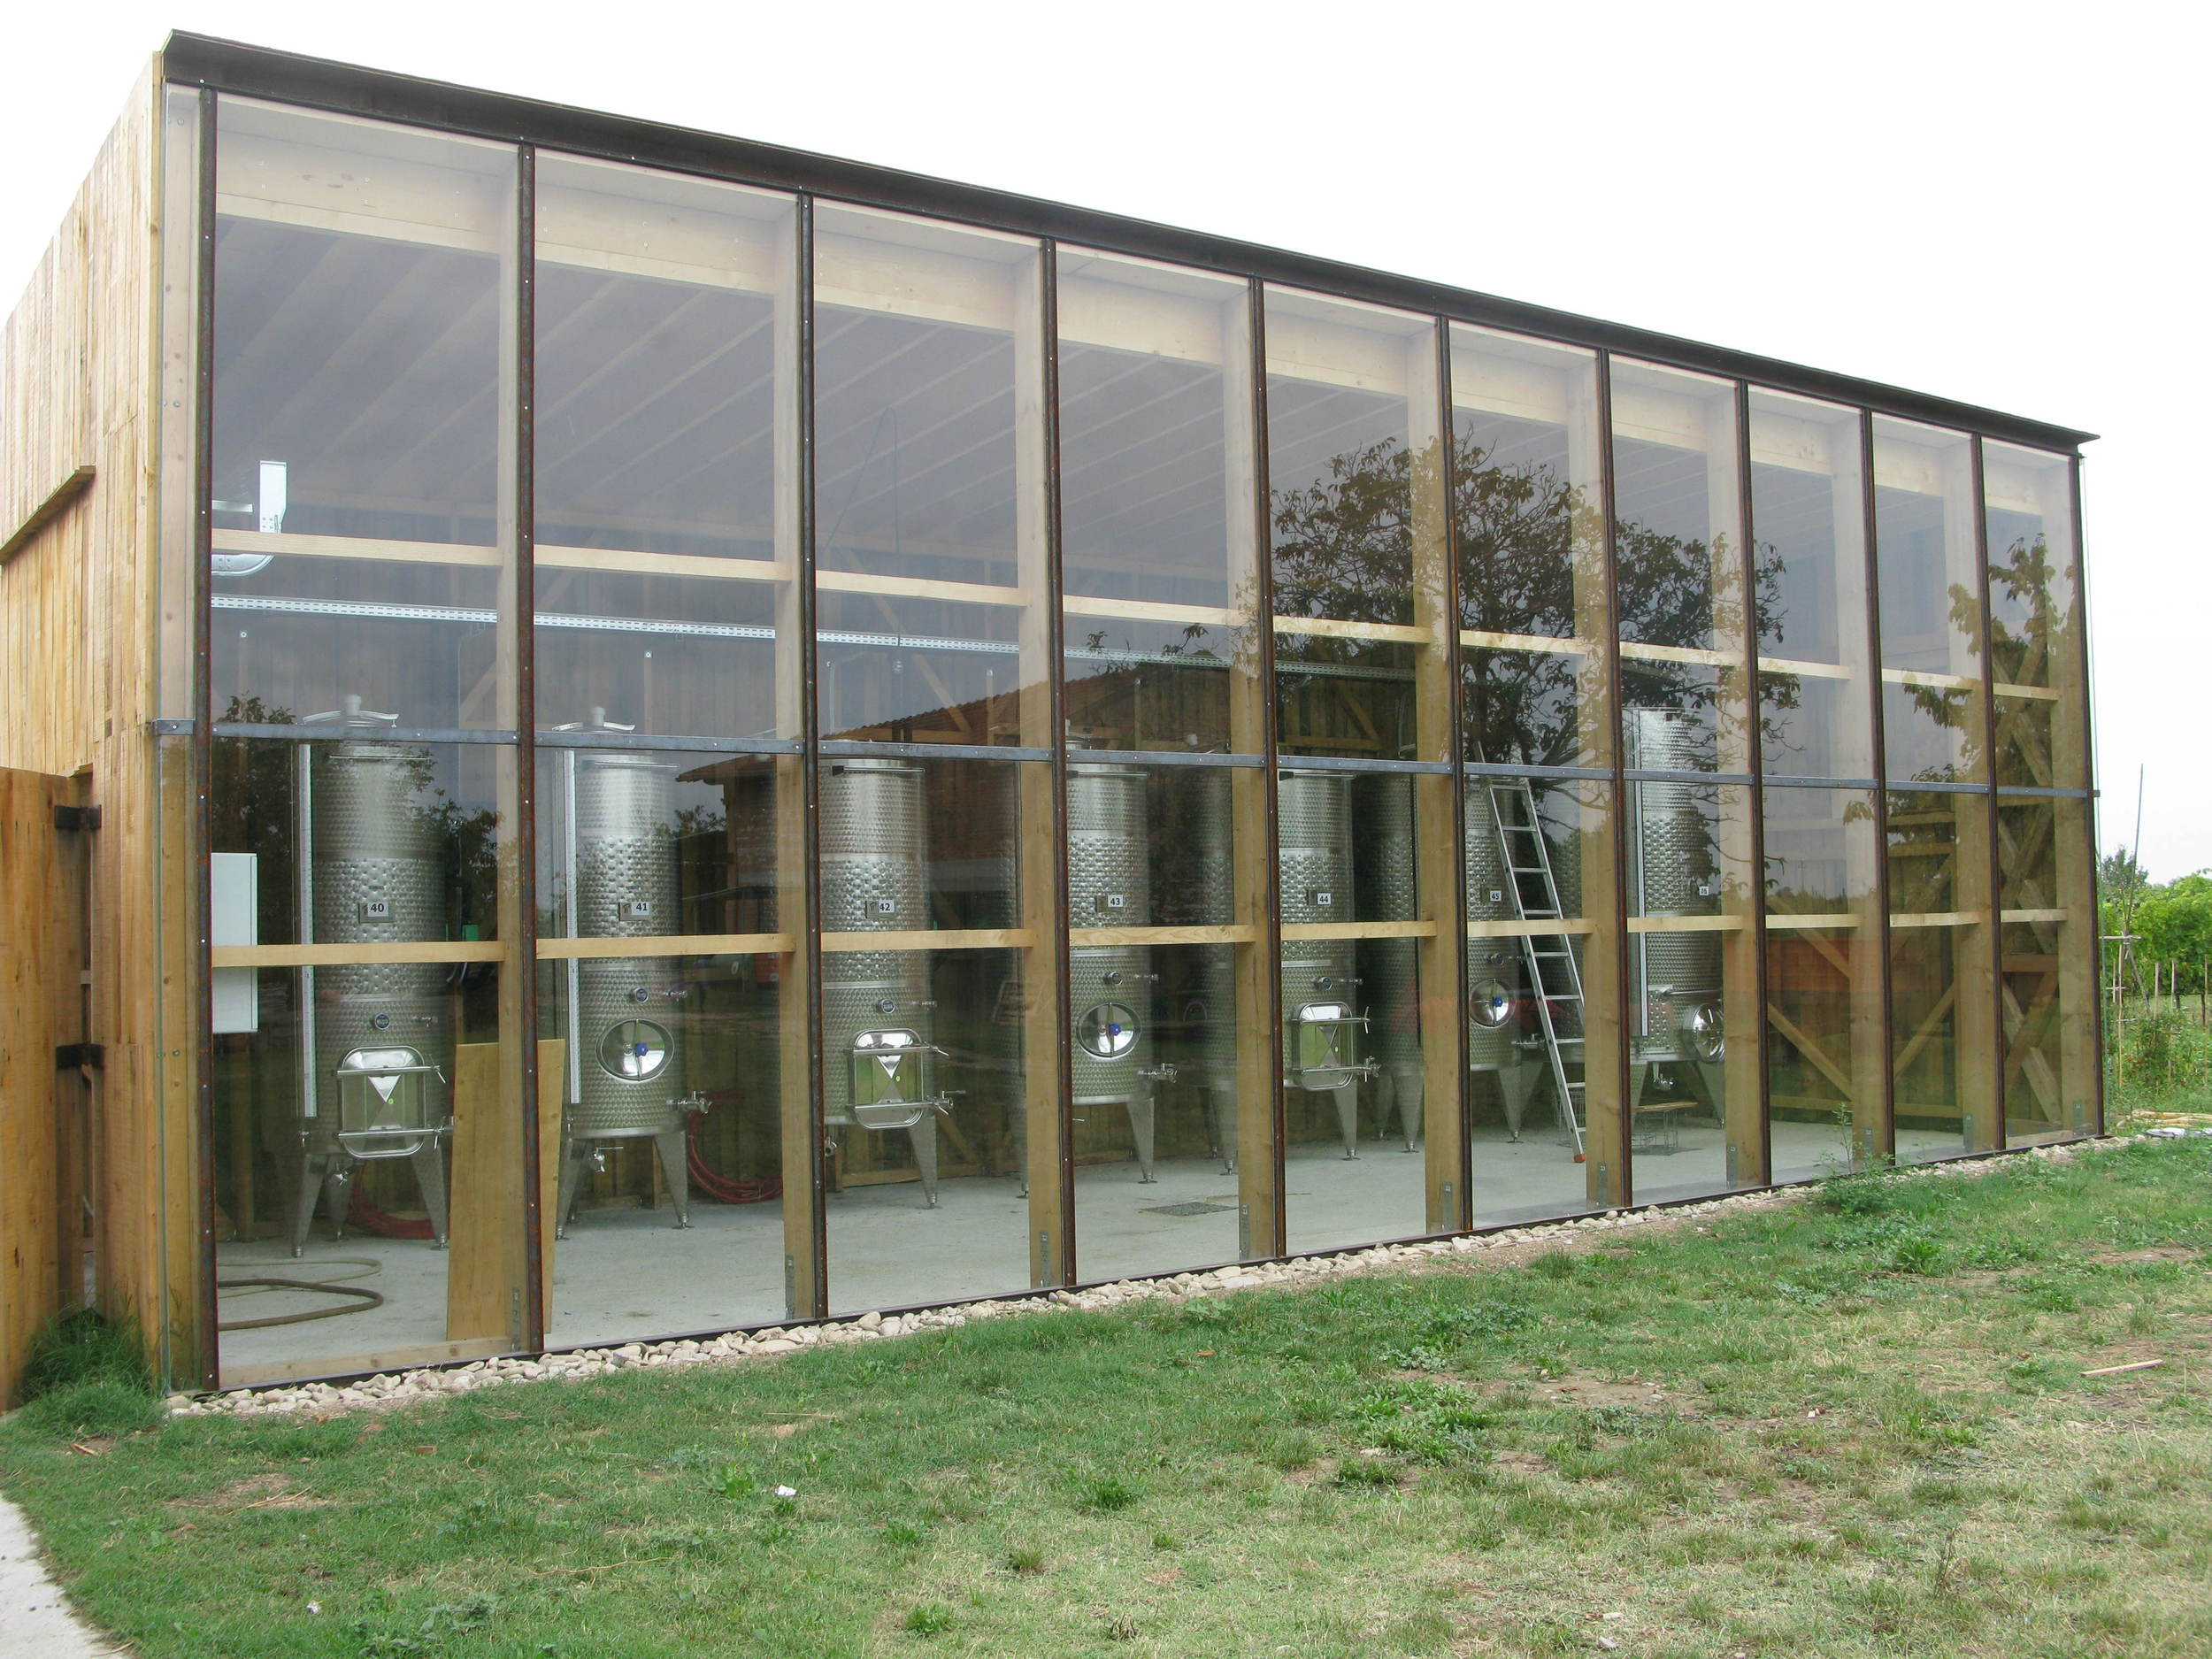 The new solar-powered winery